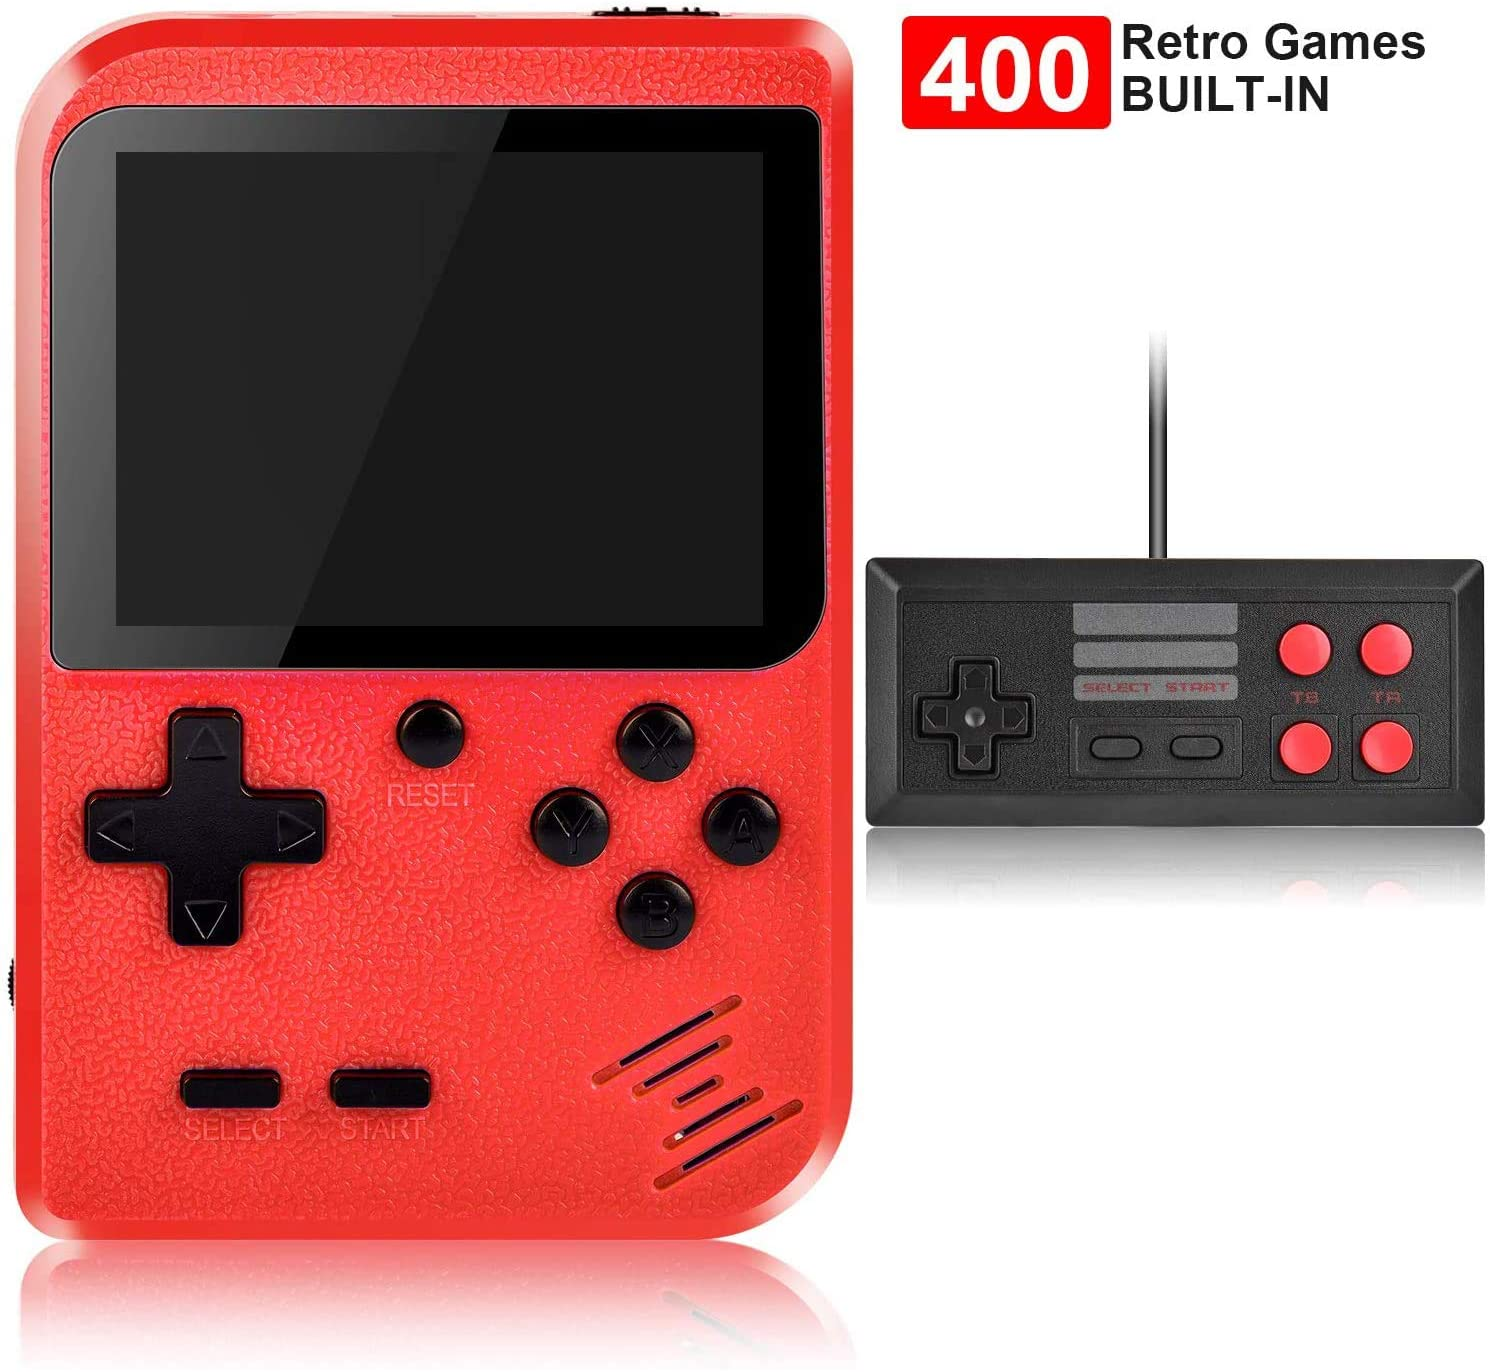 RCTOYS Handheld Game Console, Retro Game Console with 400 Classic Handheld Games, Supporting 2 Players & TV Connection, 800 mAh Rechargeable Battery